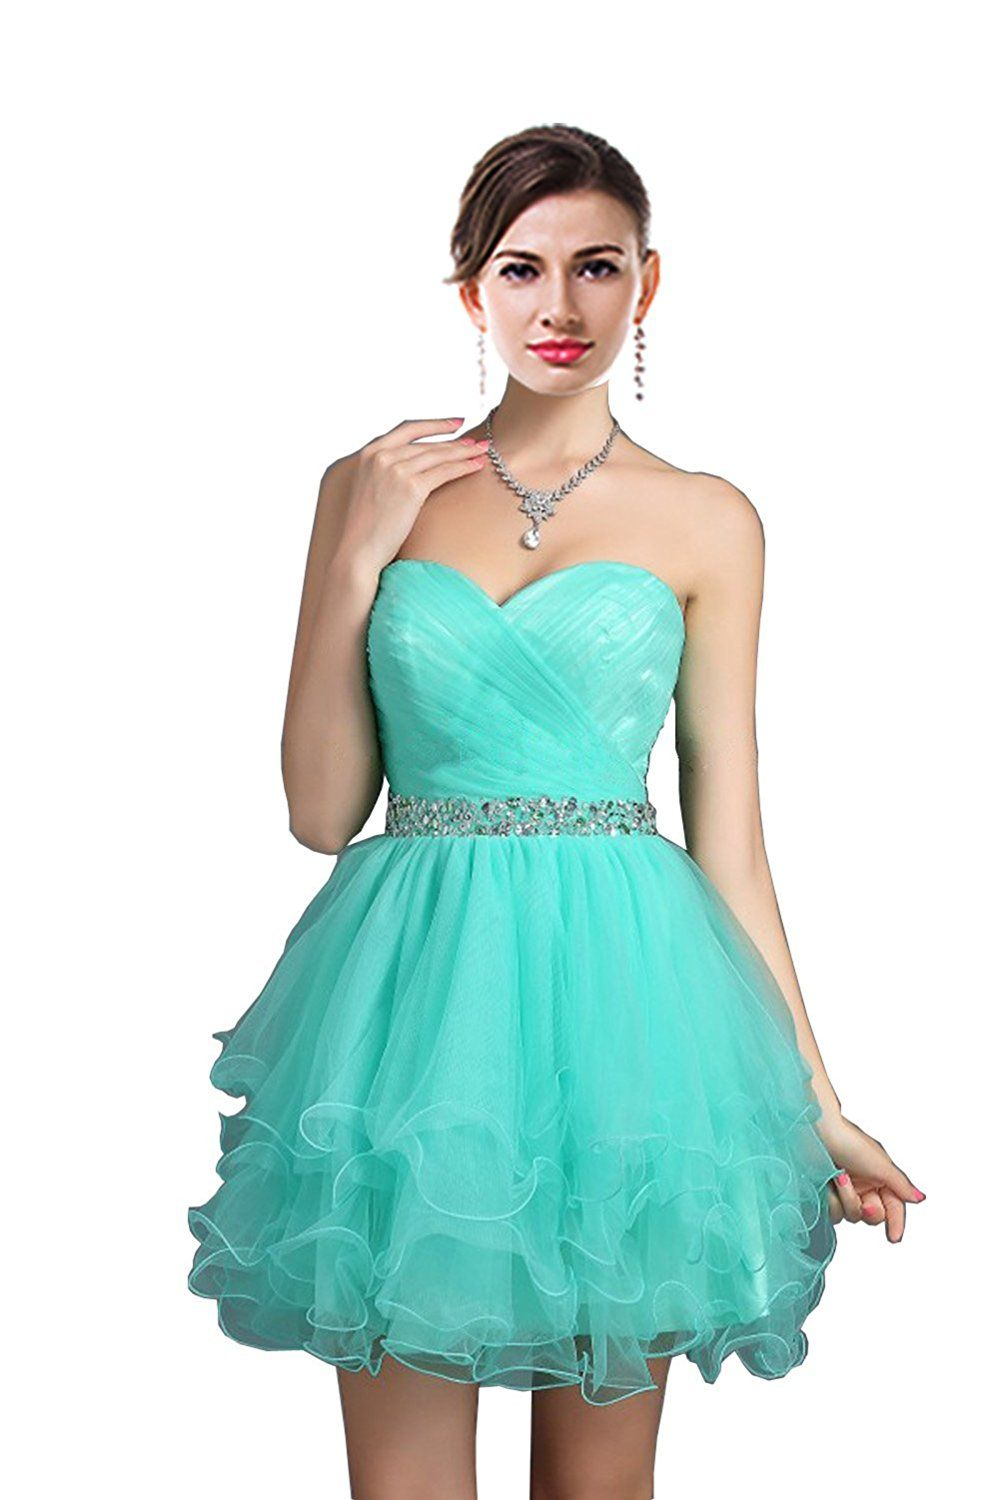 Thaliadress sweetheart rhinestone short party homecoming dresses